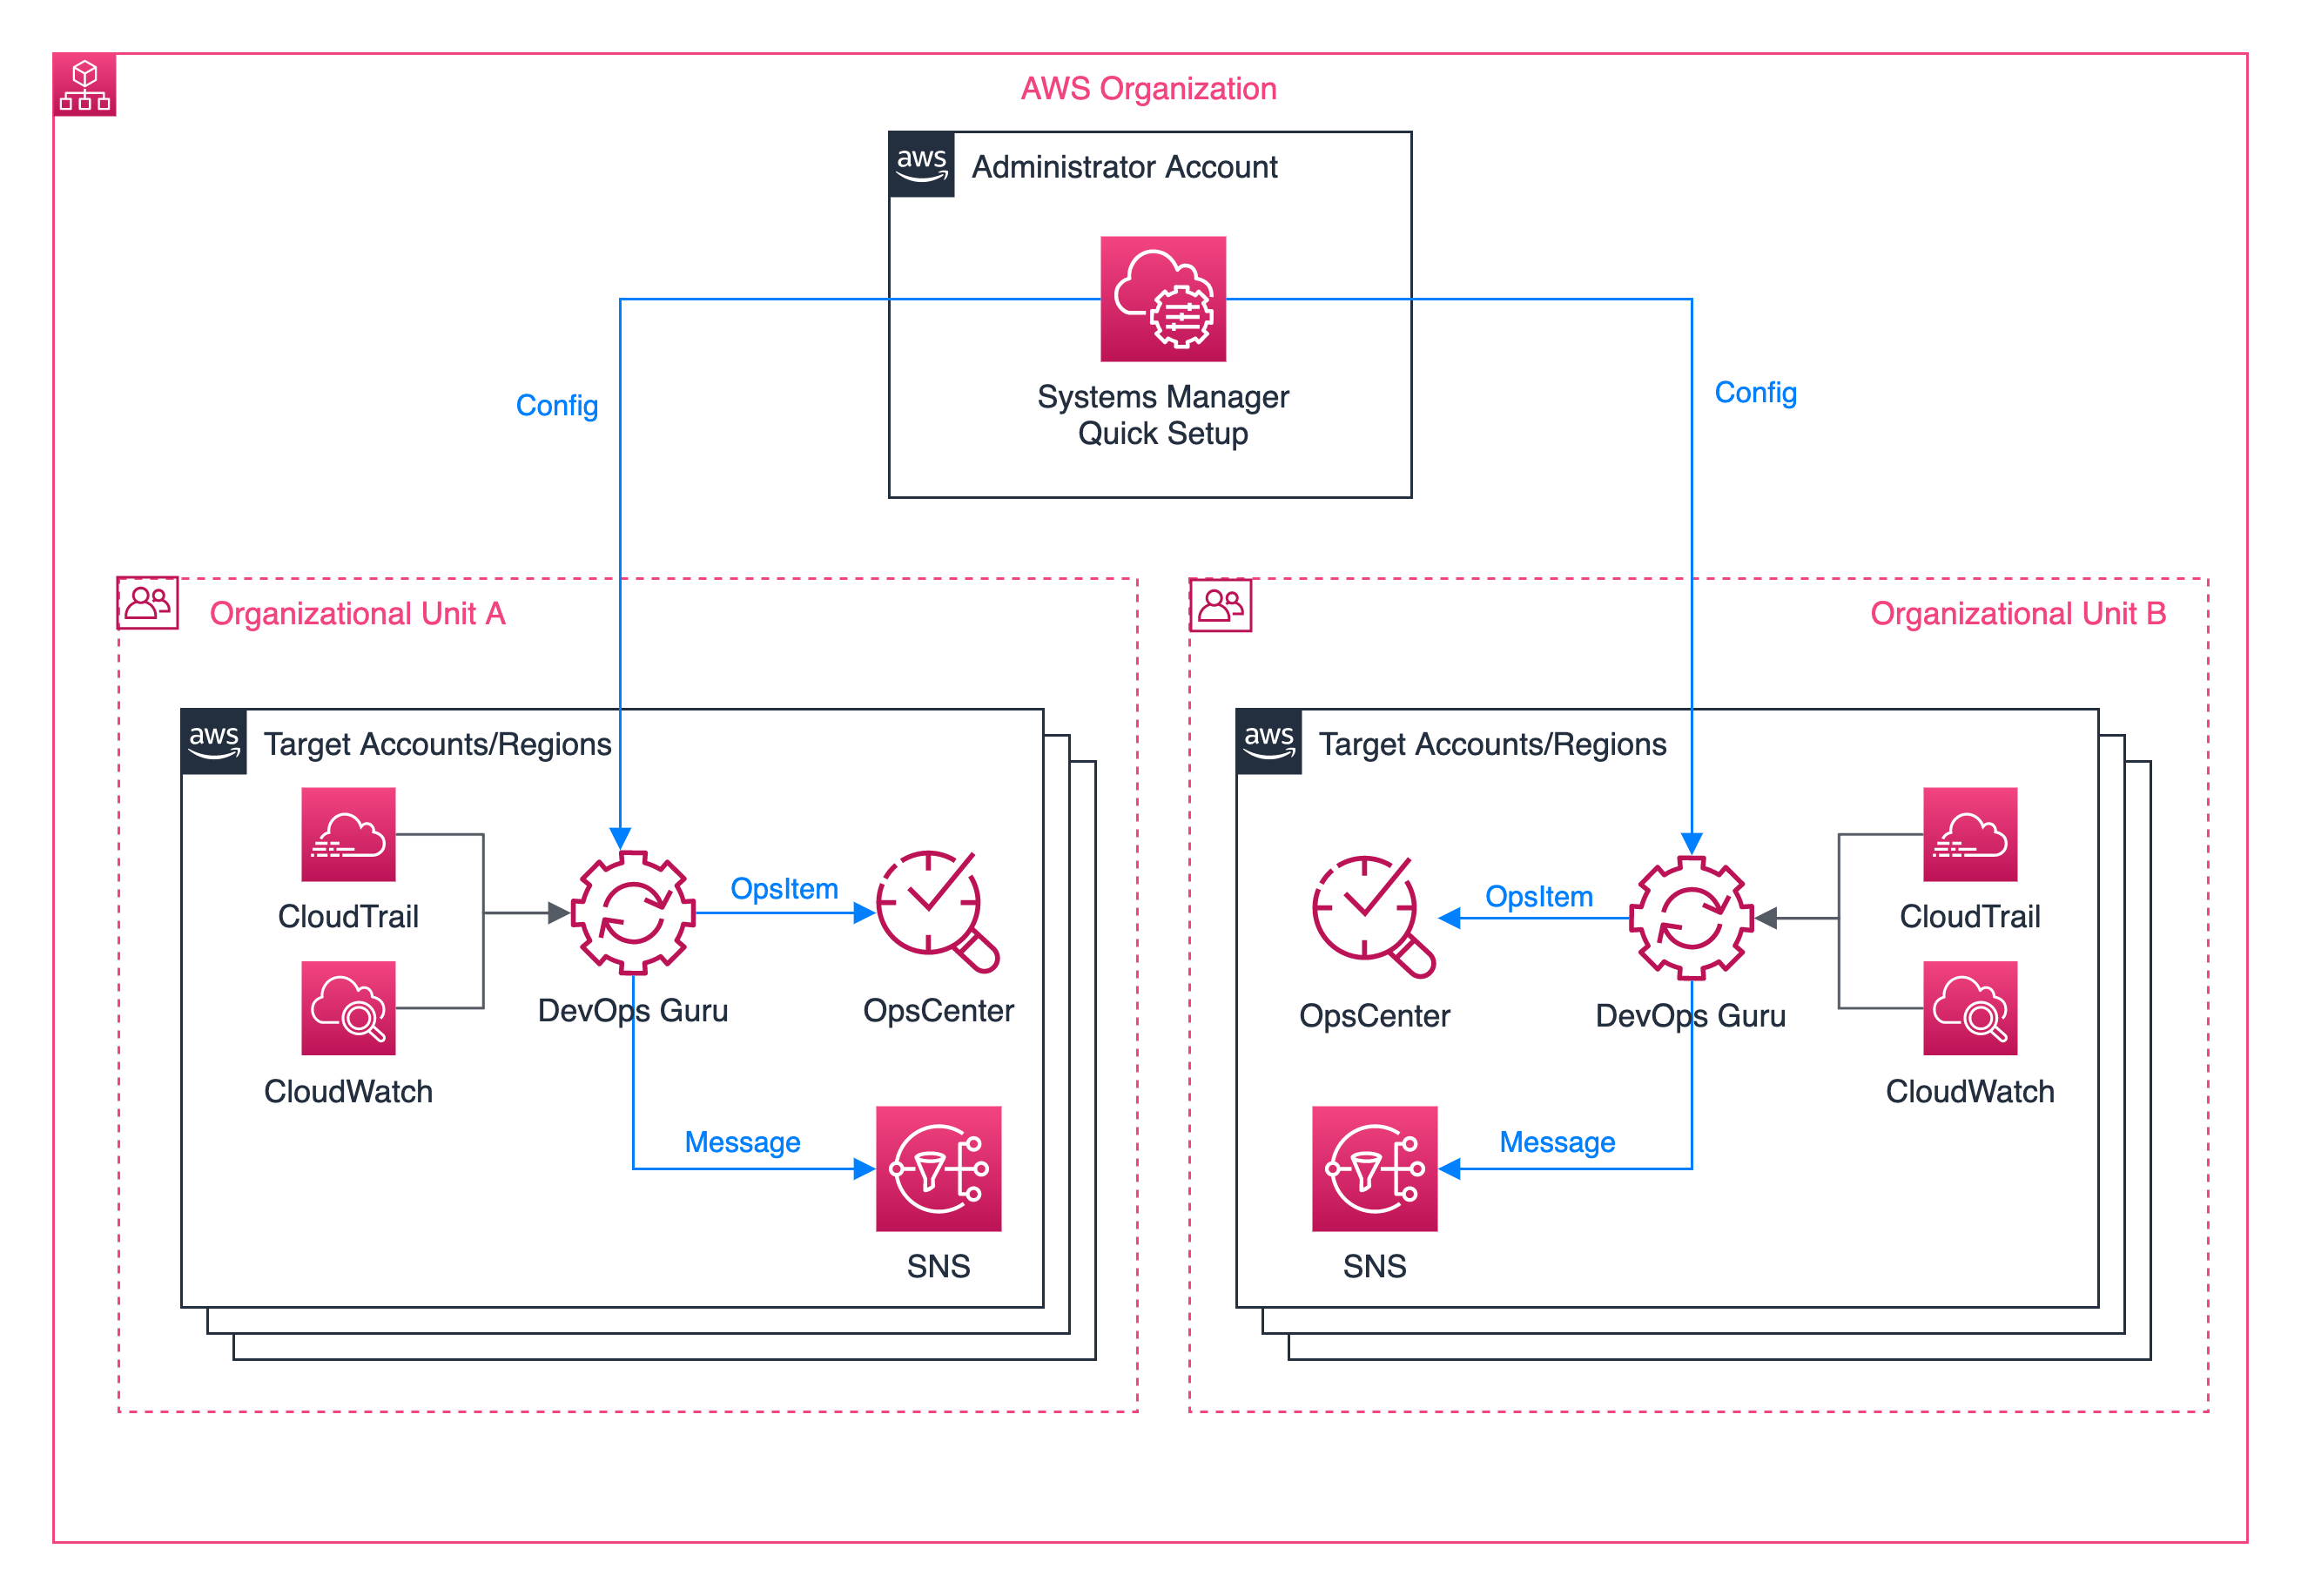 Architecture diagram depicting how to use Systems Manager Quick Setup to enable DevOps Guru in your Organizational Units from a central account